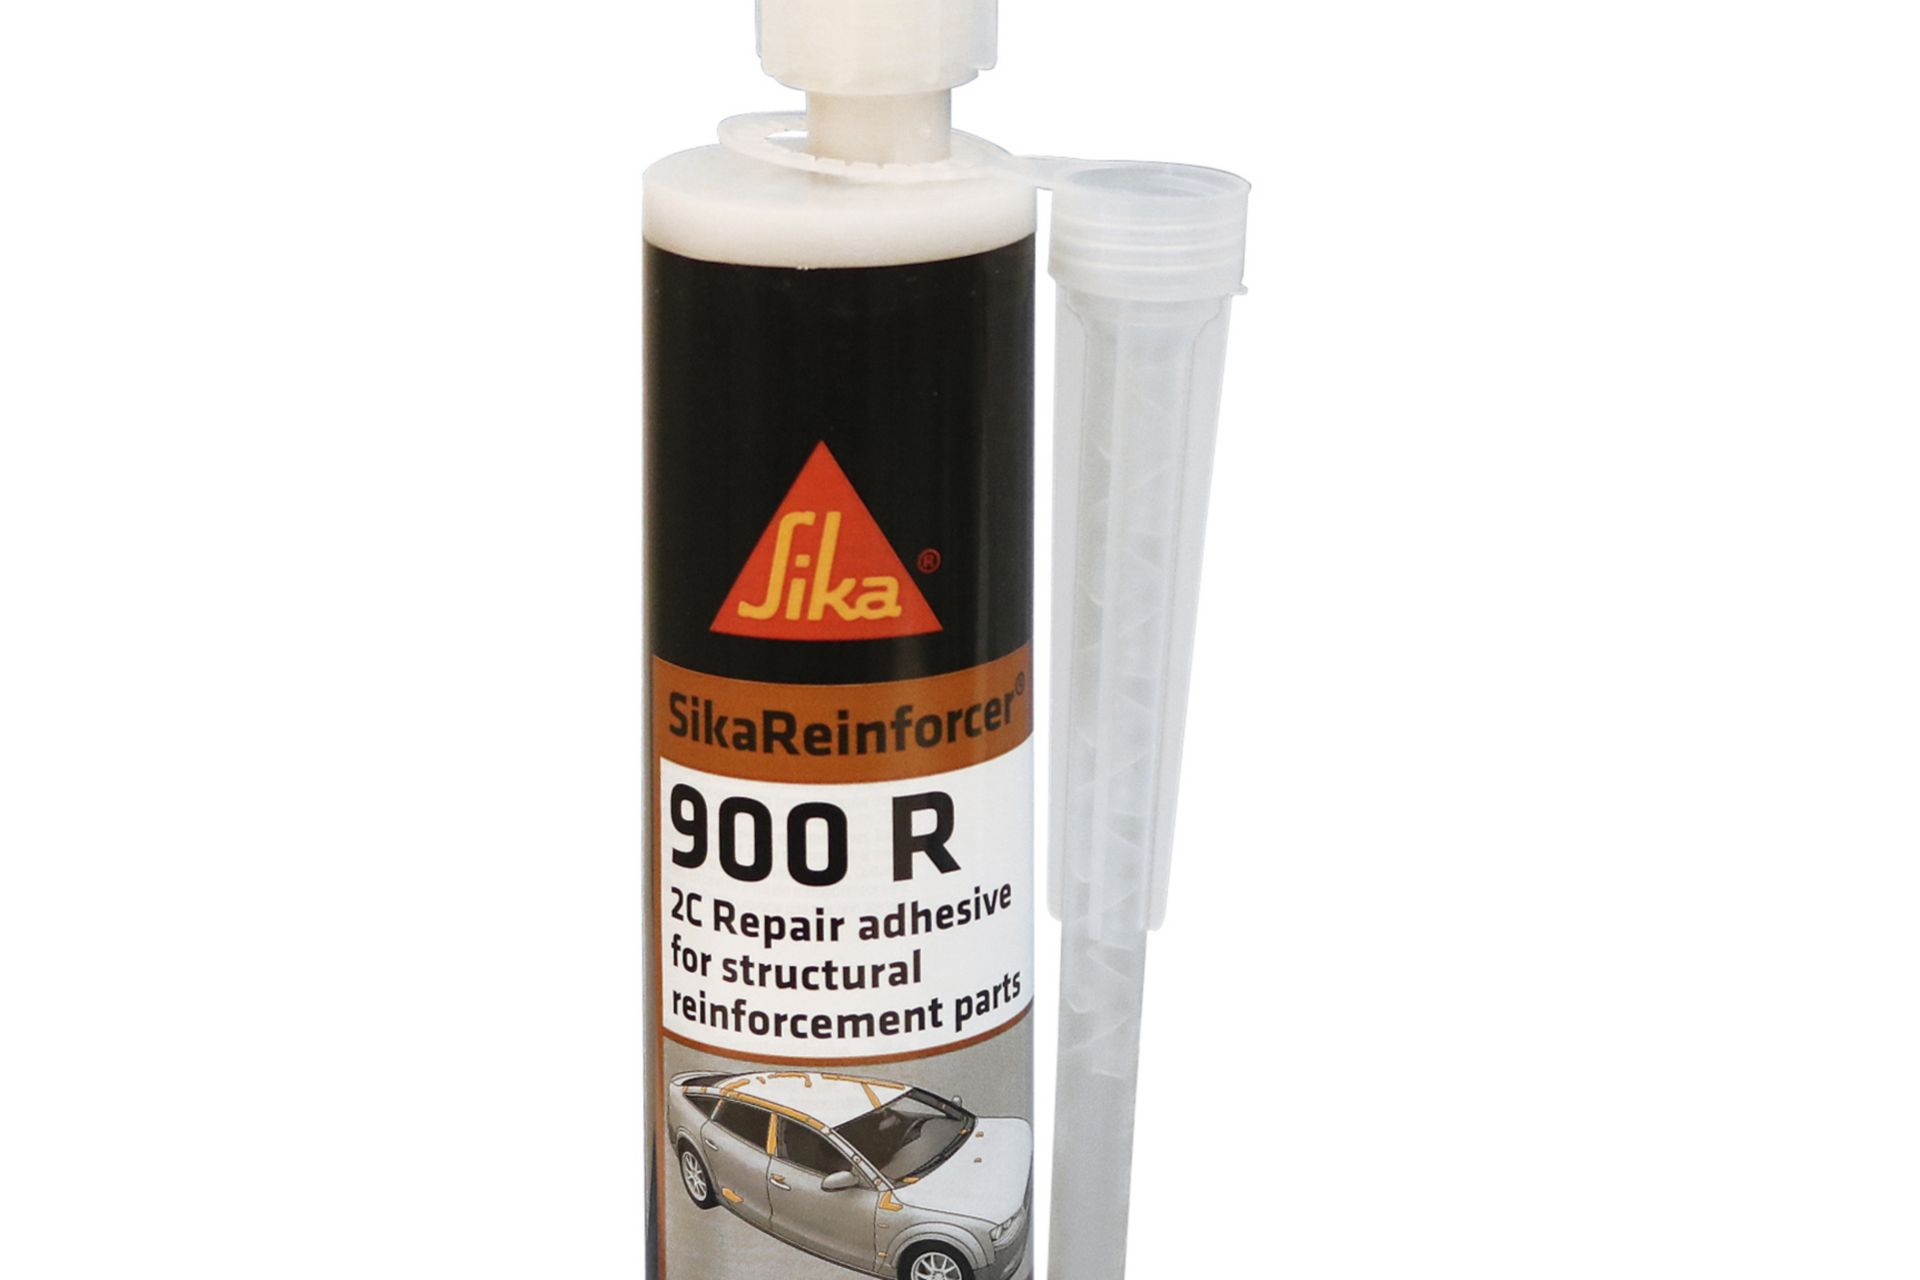 2c Repair adhesive for structural reinforcement parts